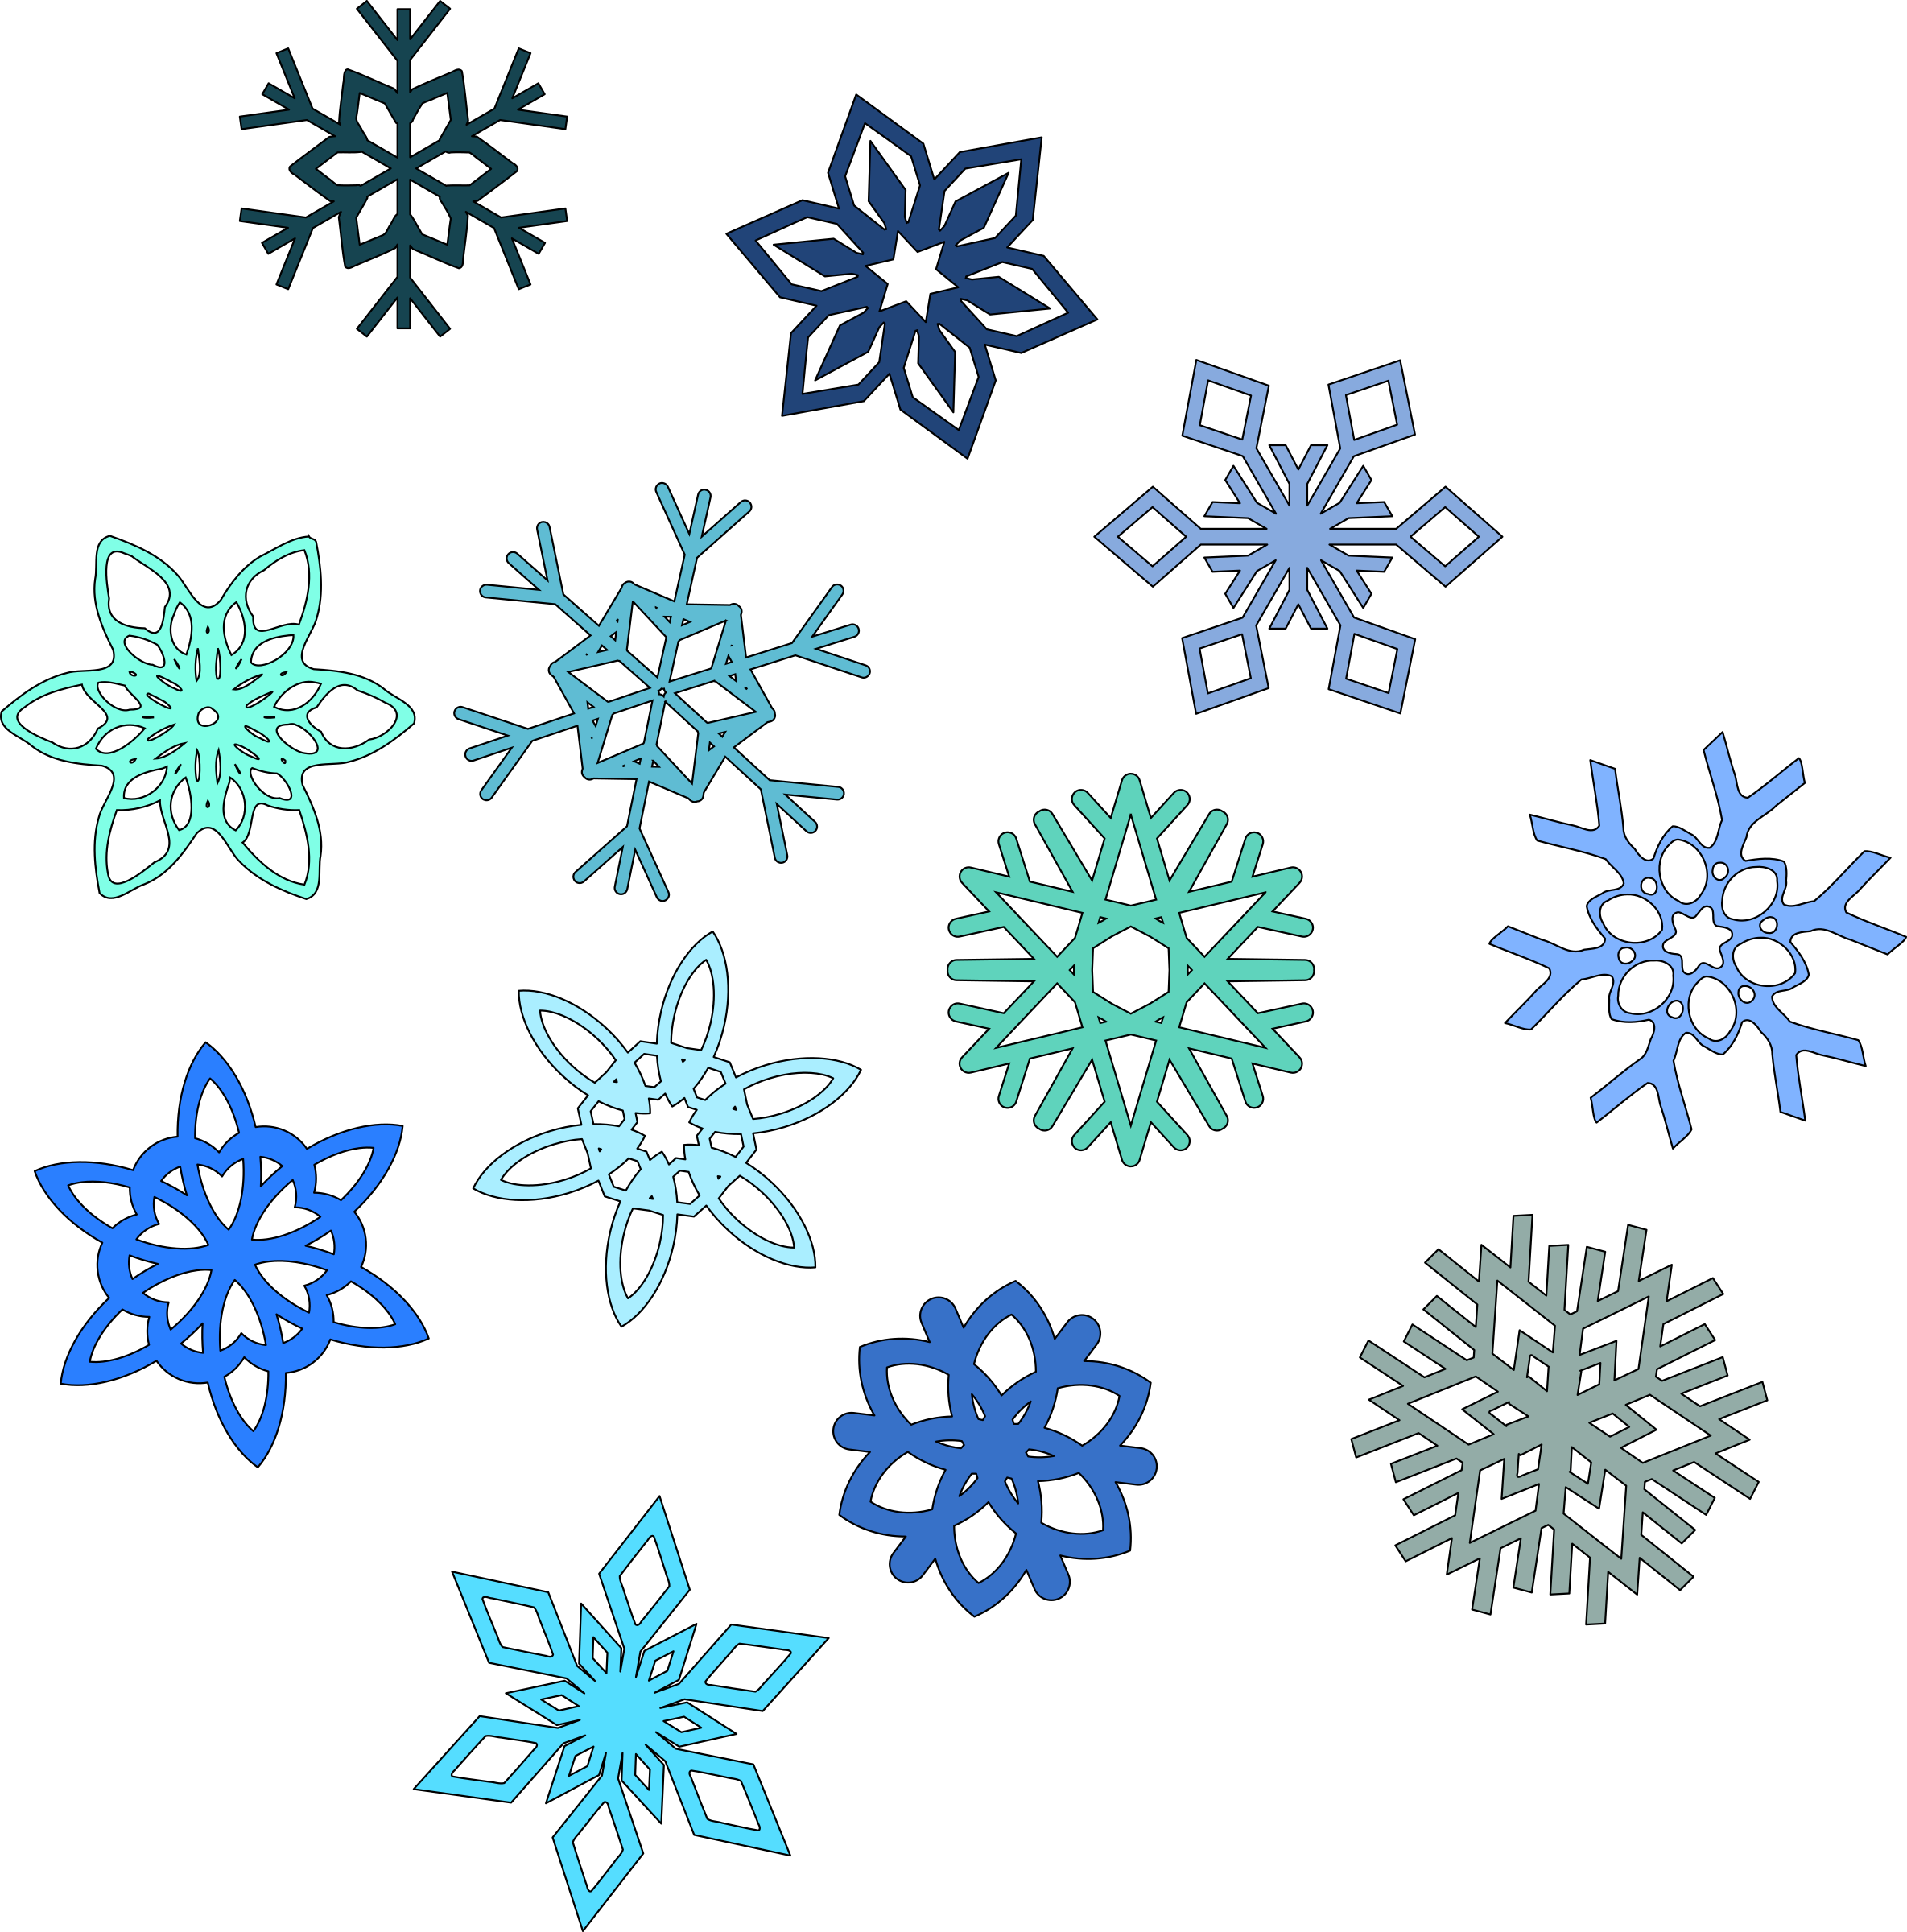 snowflake silhouette clip art at getdrawings com free for personal rh getdrawings com  snowflake picture clipart